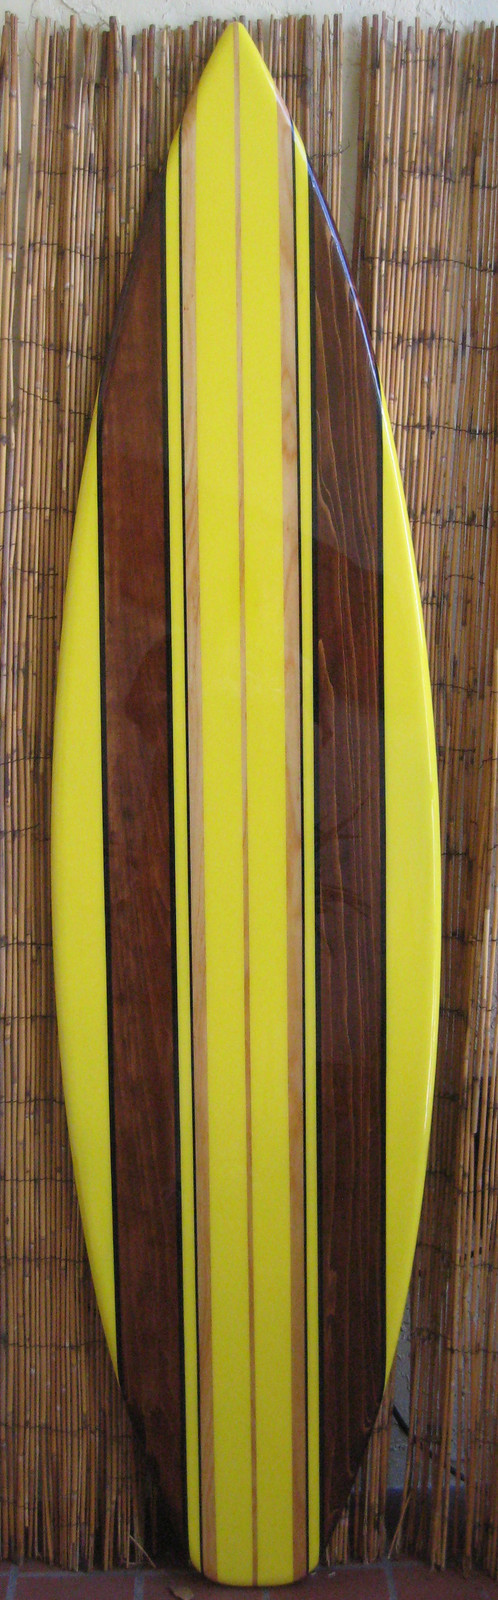 Fine Decorative Surfboards To Hang On Wall Gallery - The Wall Art ...